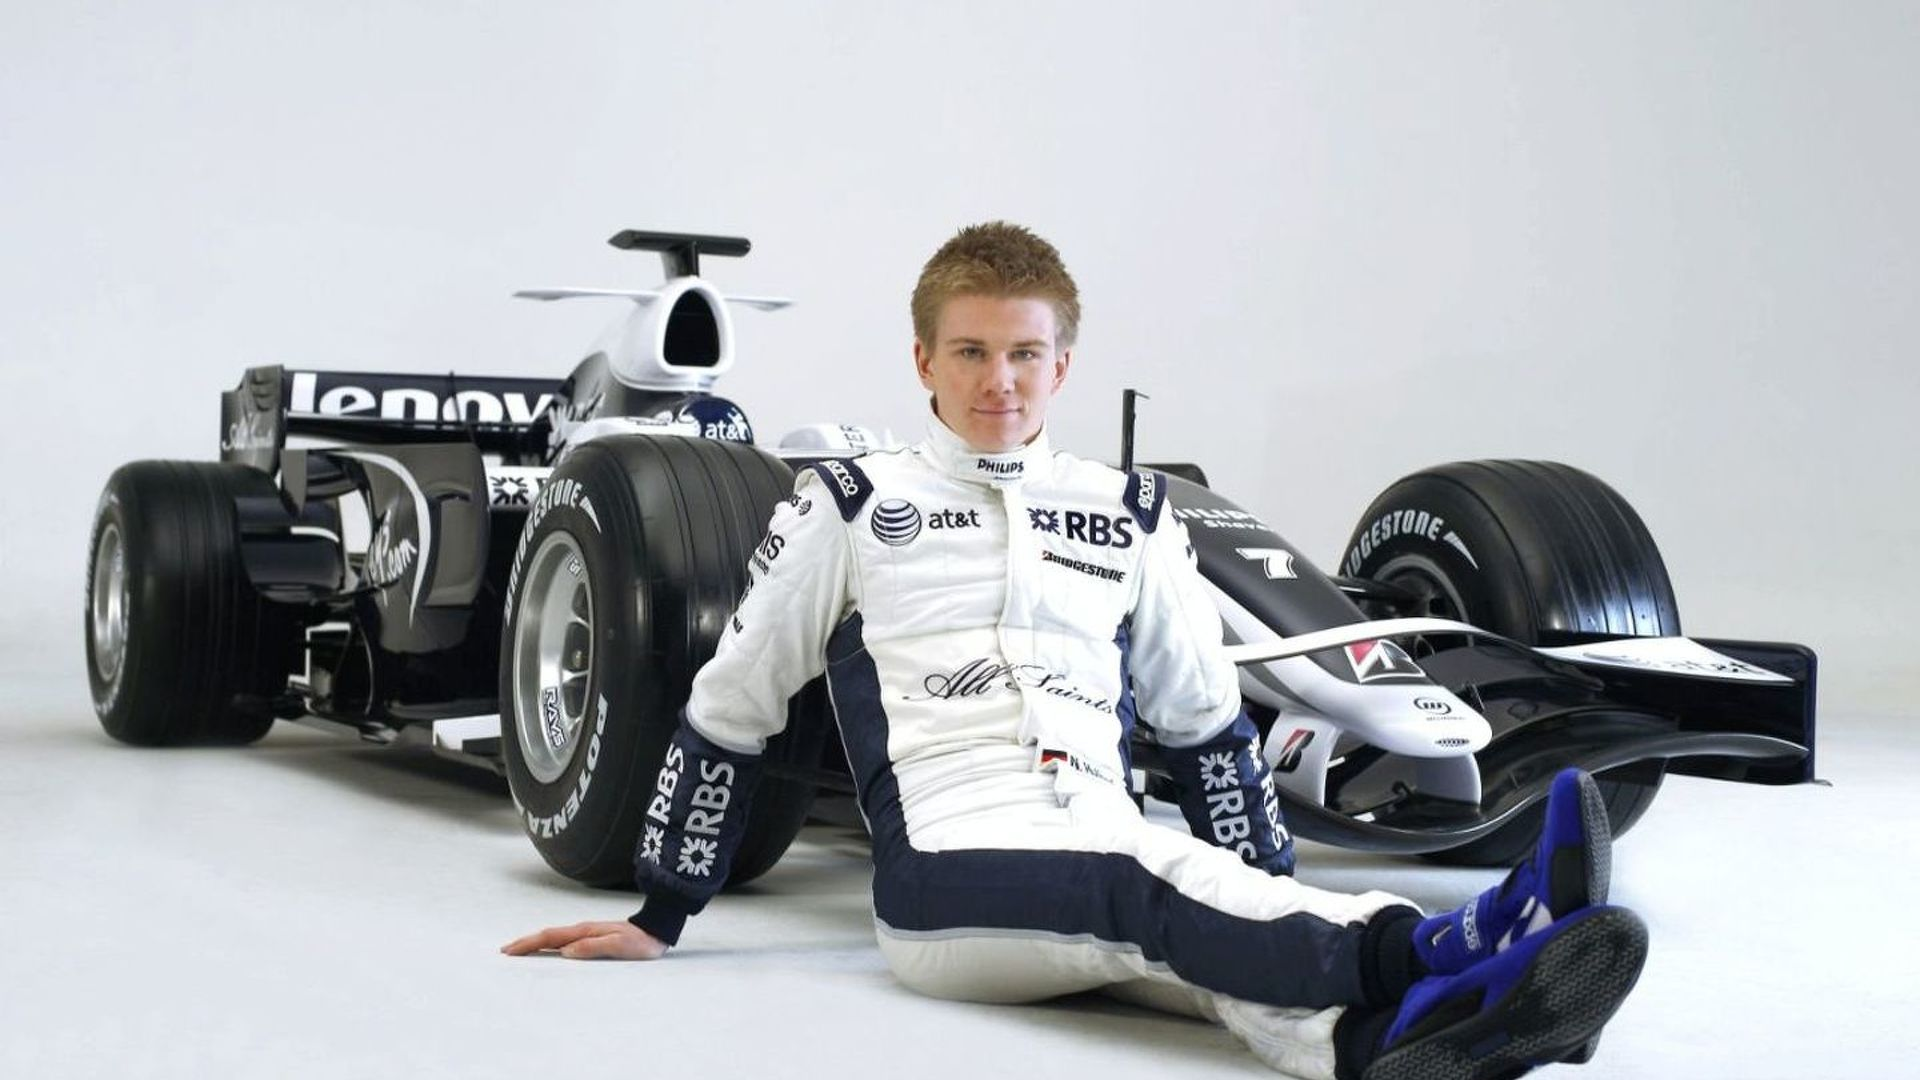 Williams to decide on 2010 drivers soon